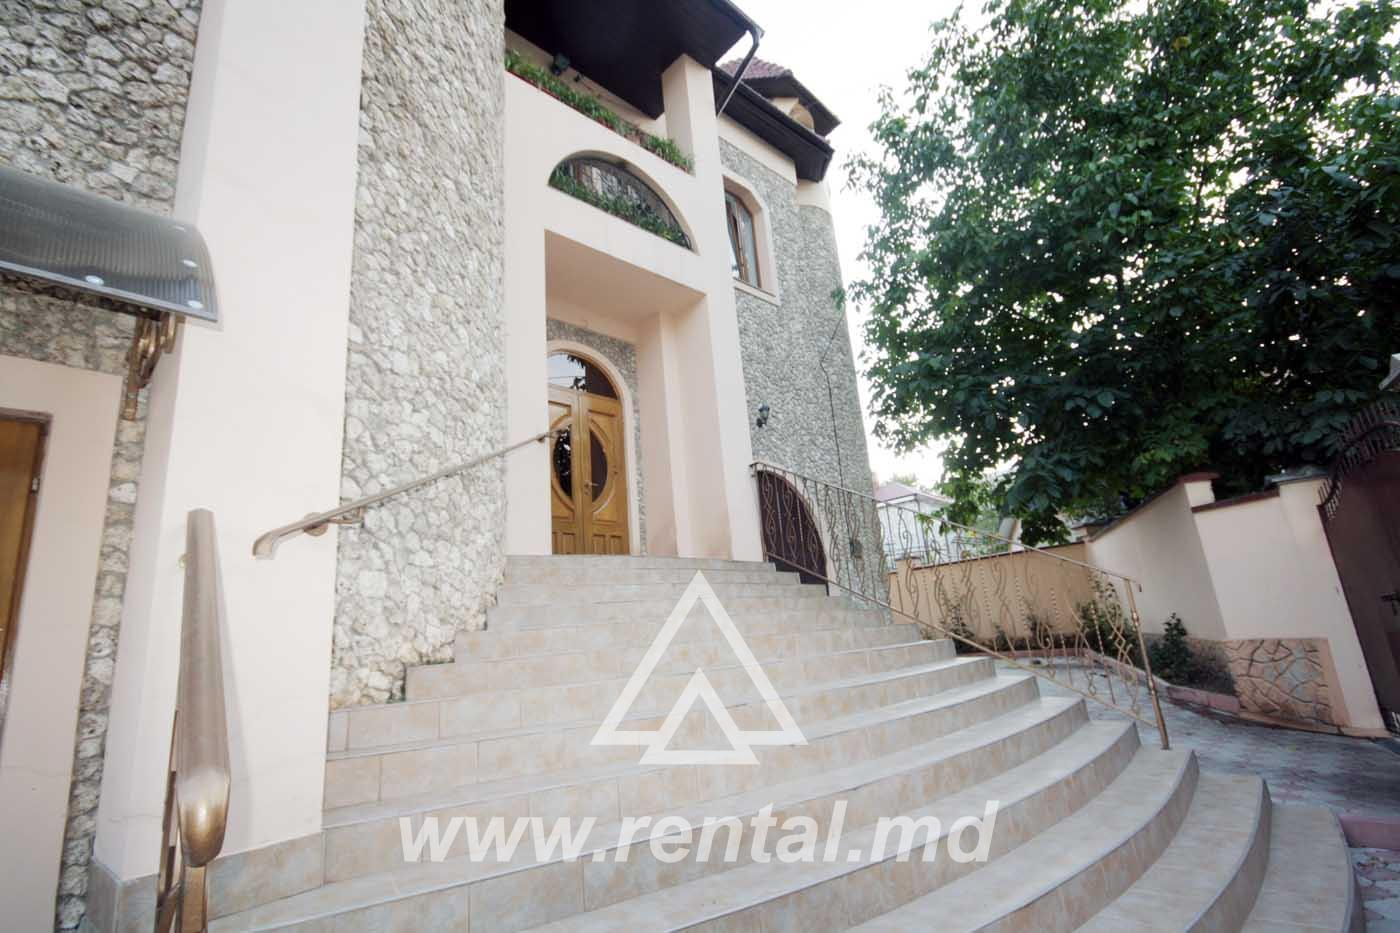 House for rent in Buicani Chisinau